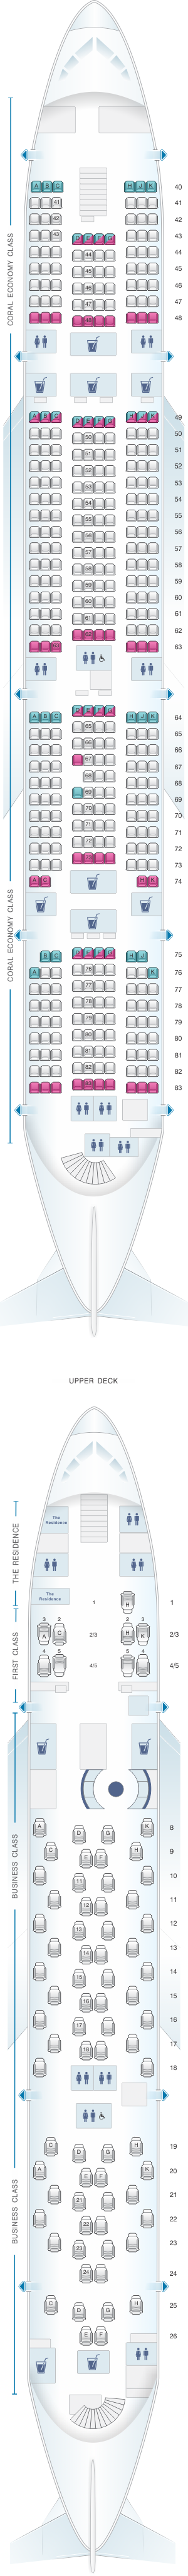 Seat map for Etihad Airways Airbus A380 800